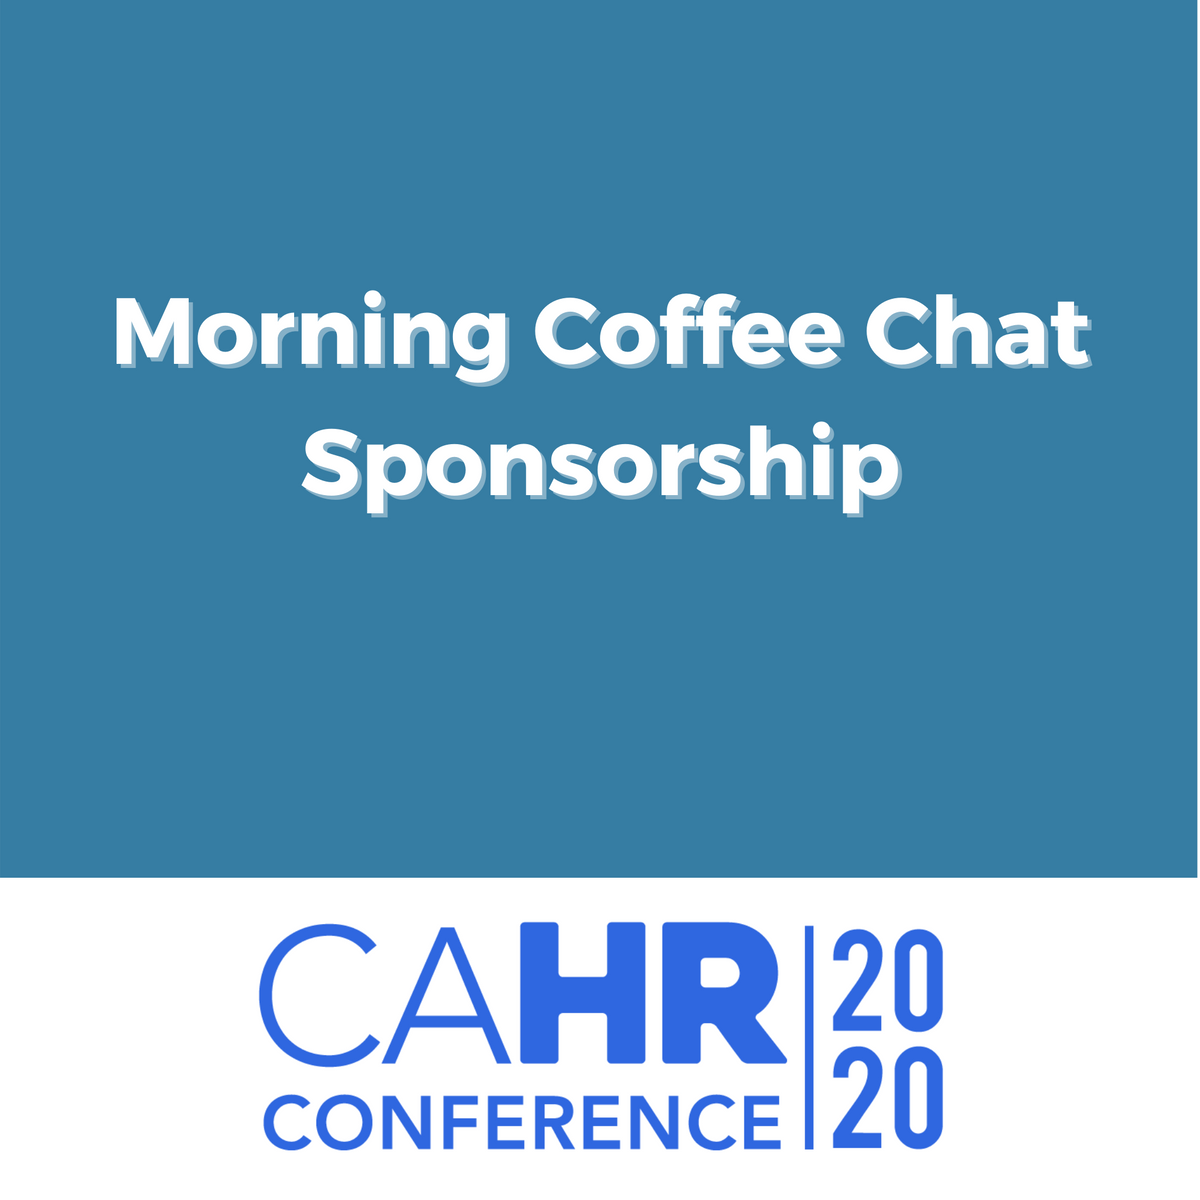 Morning Coffee Chat Sponsorship